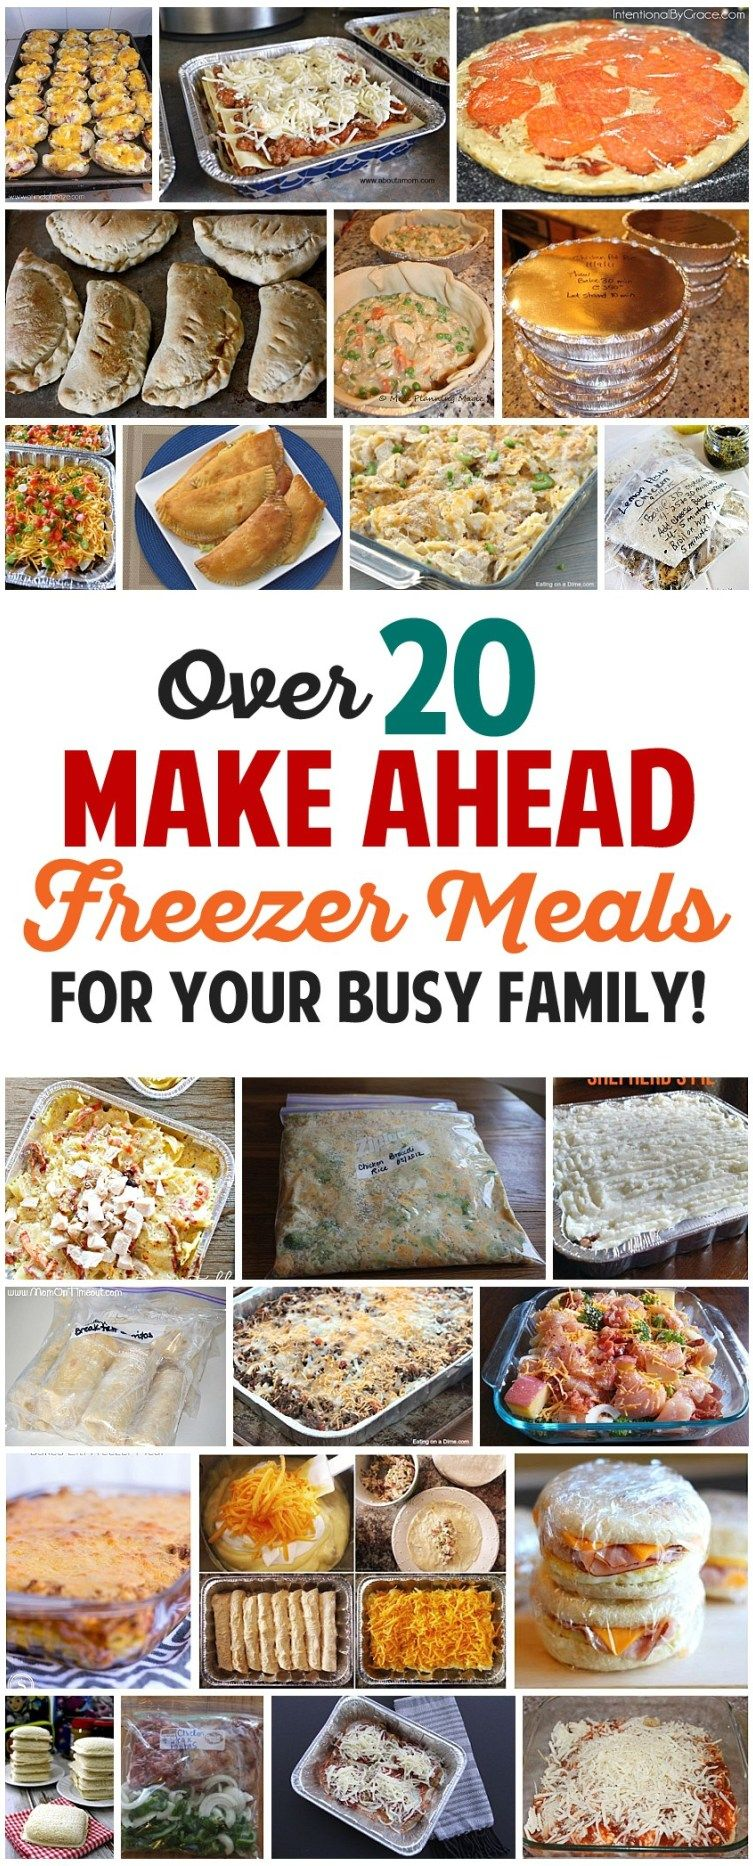 7 Freezer Meal Plans: 100 Healthy Freezer Meals